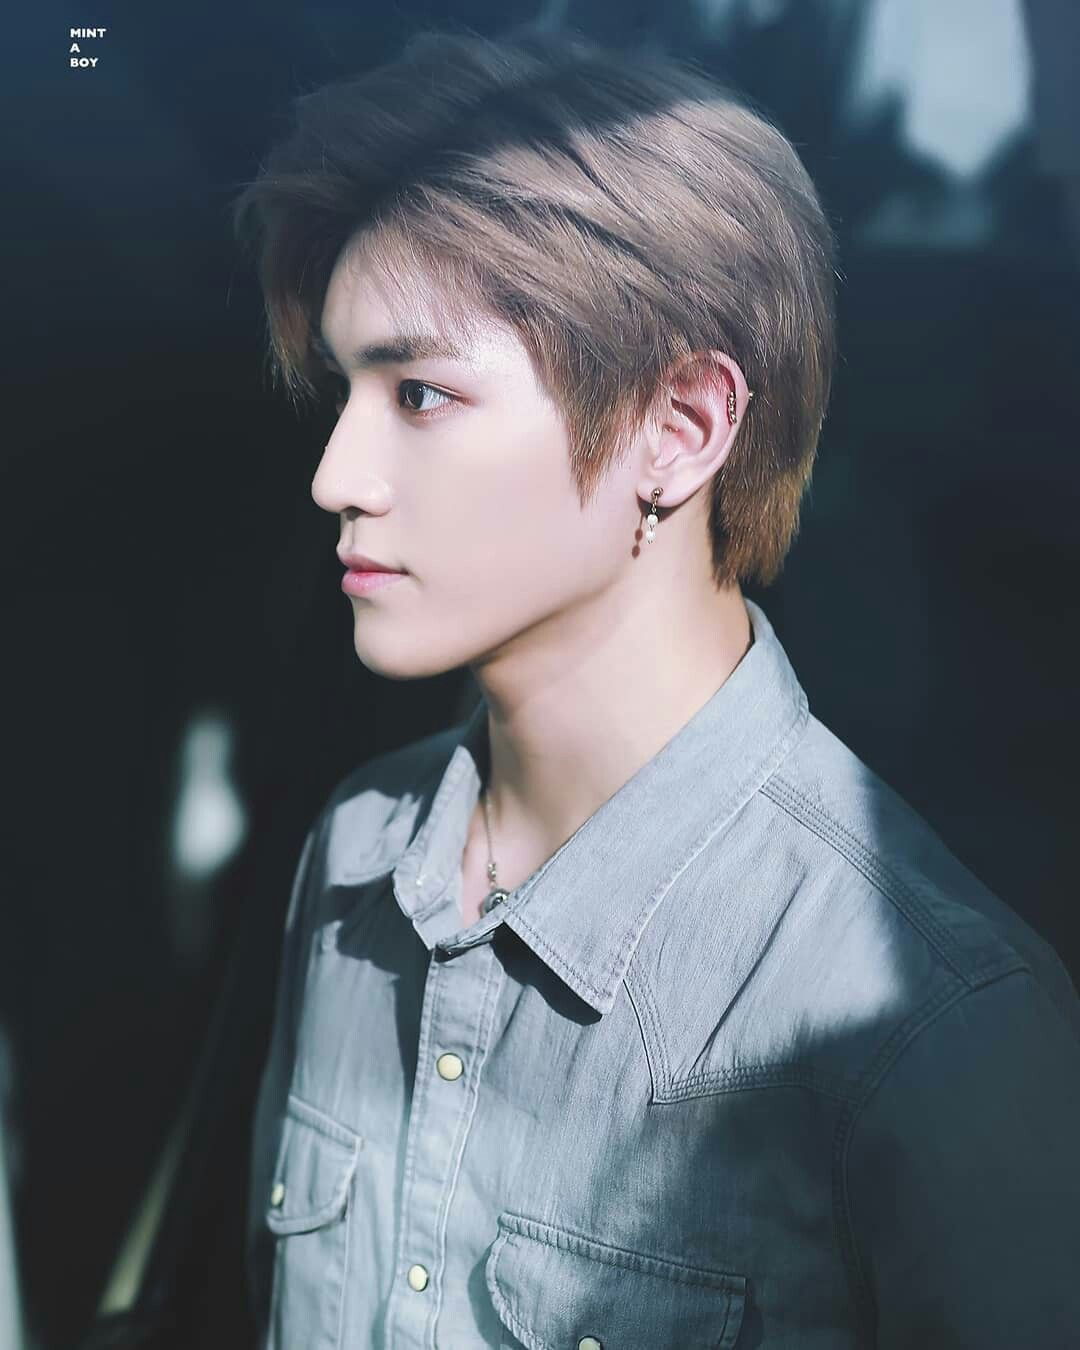 HE HAS THE MOST BEAUTIFUL SIDE PROFILE I'VE EVER SEEN I SWEAR | TY TRACC | NCT ...